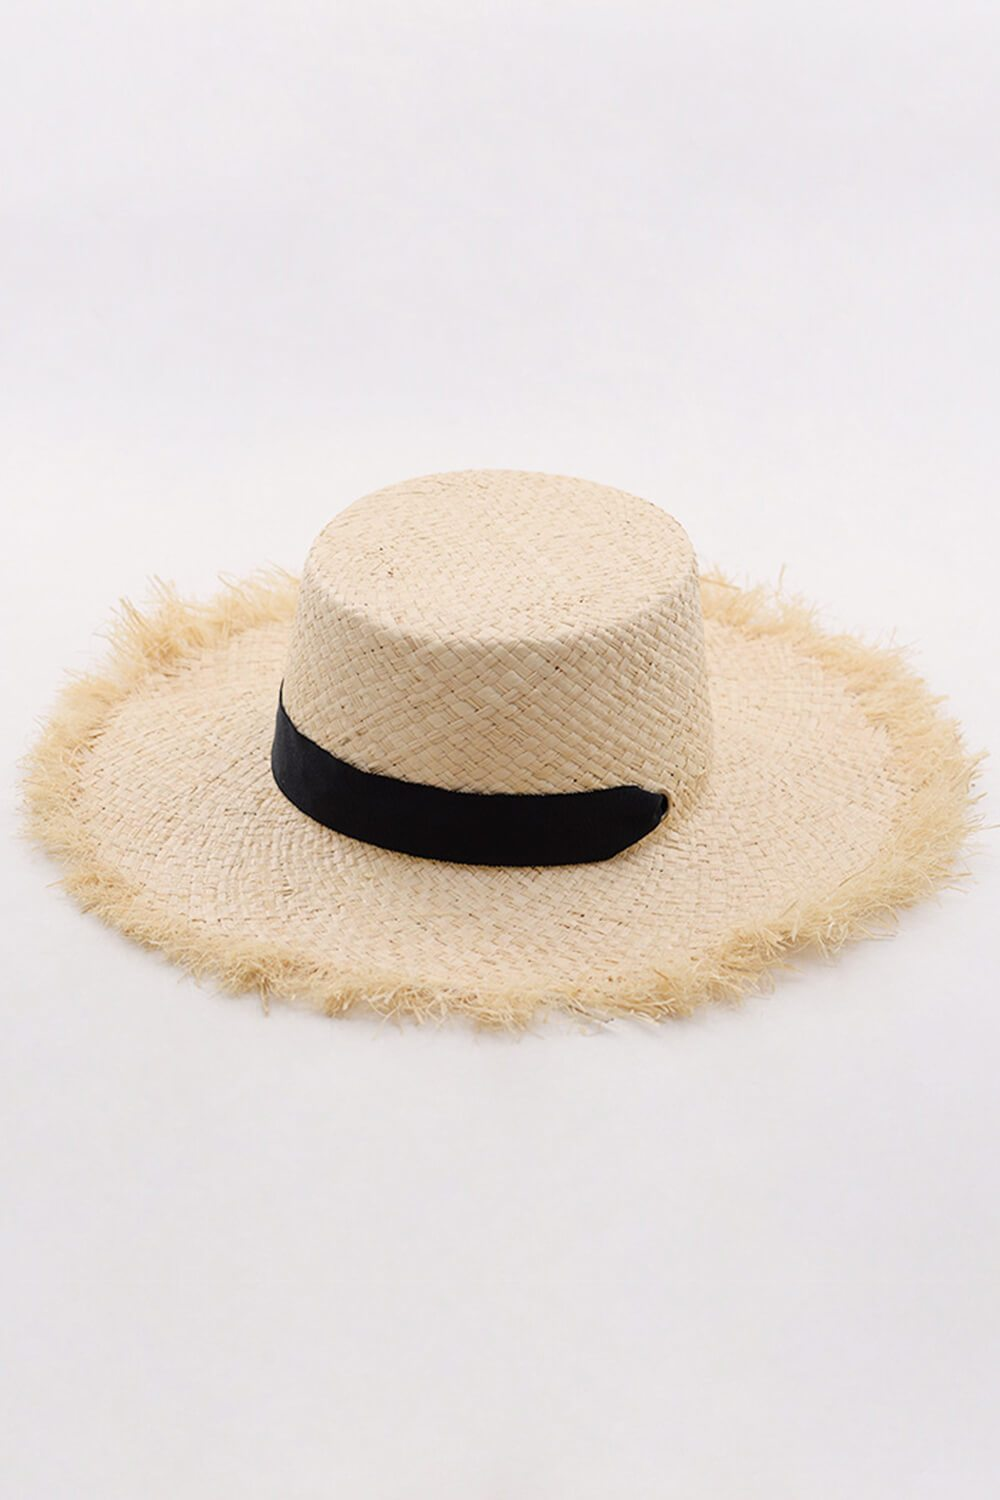 Raffia Straw Boater With Black Chin Tie